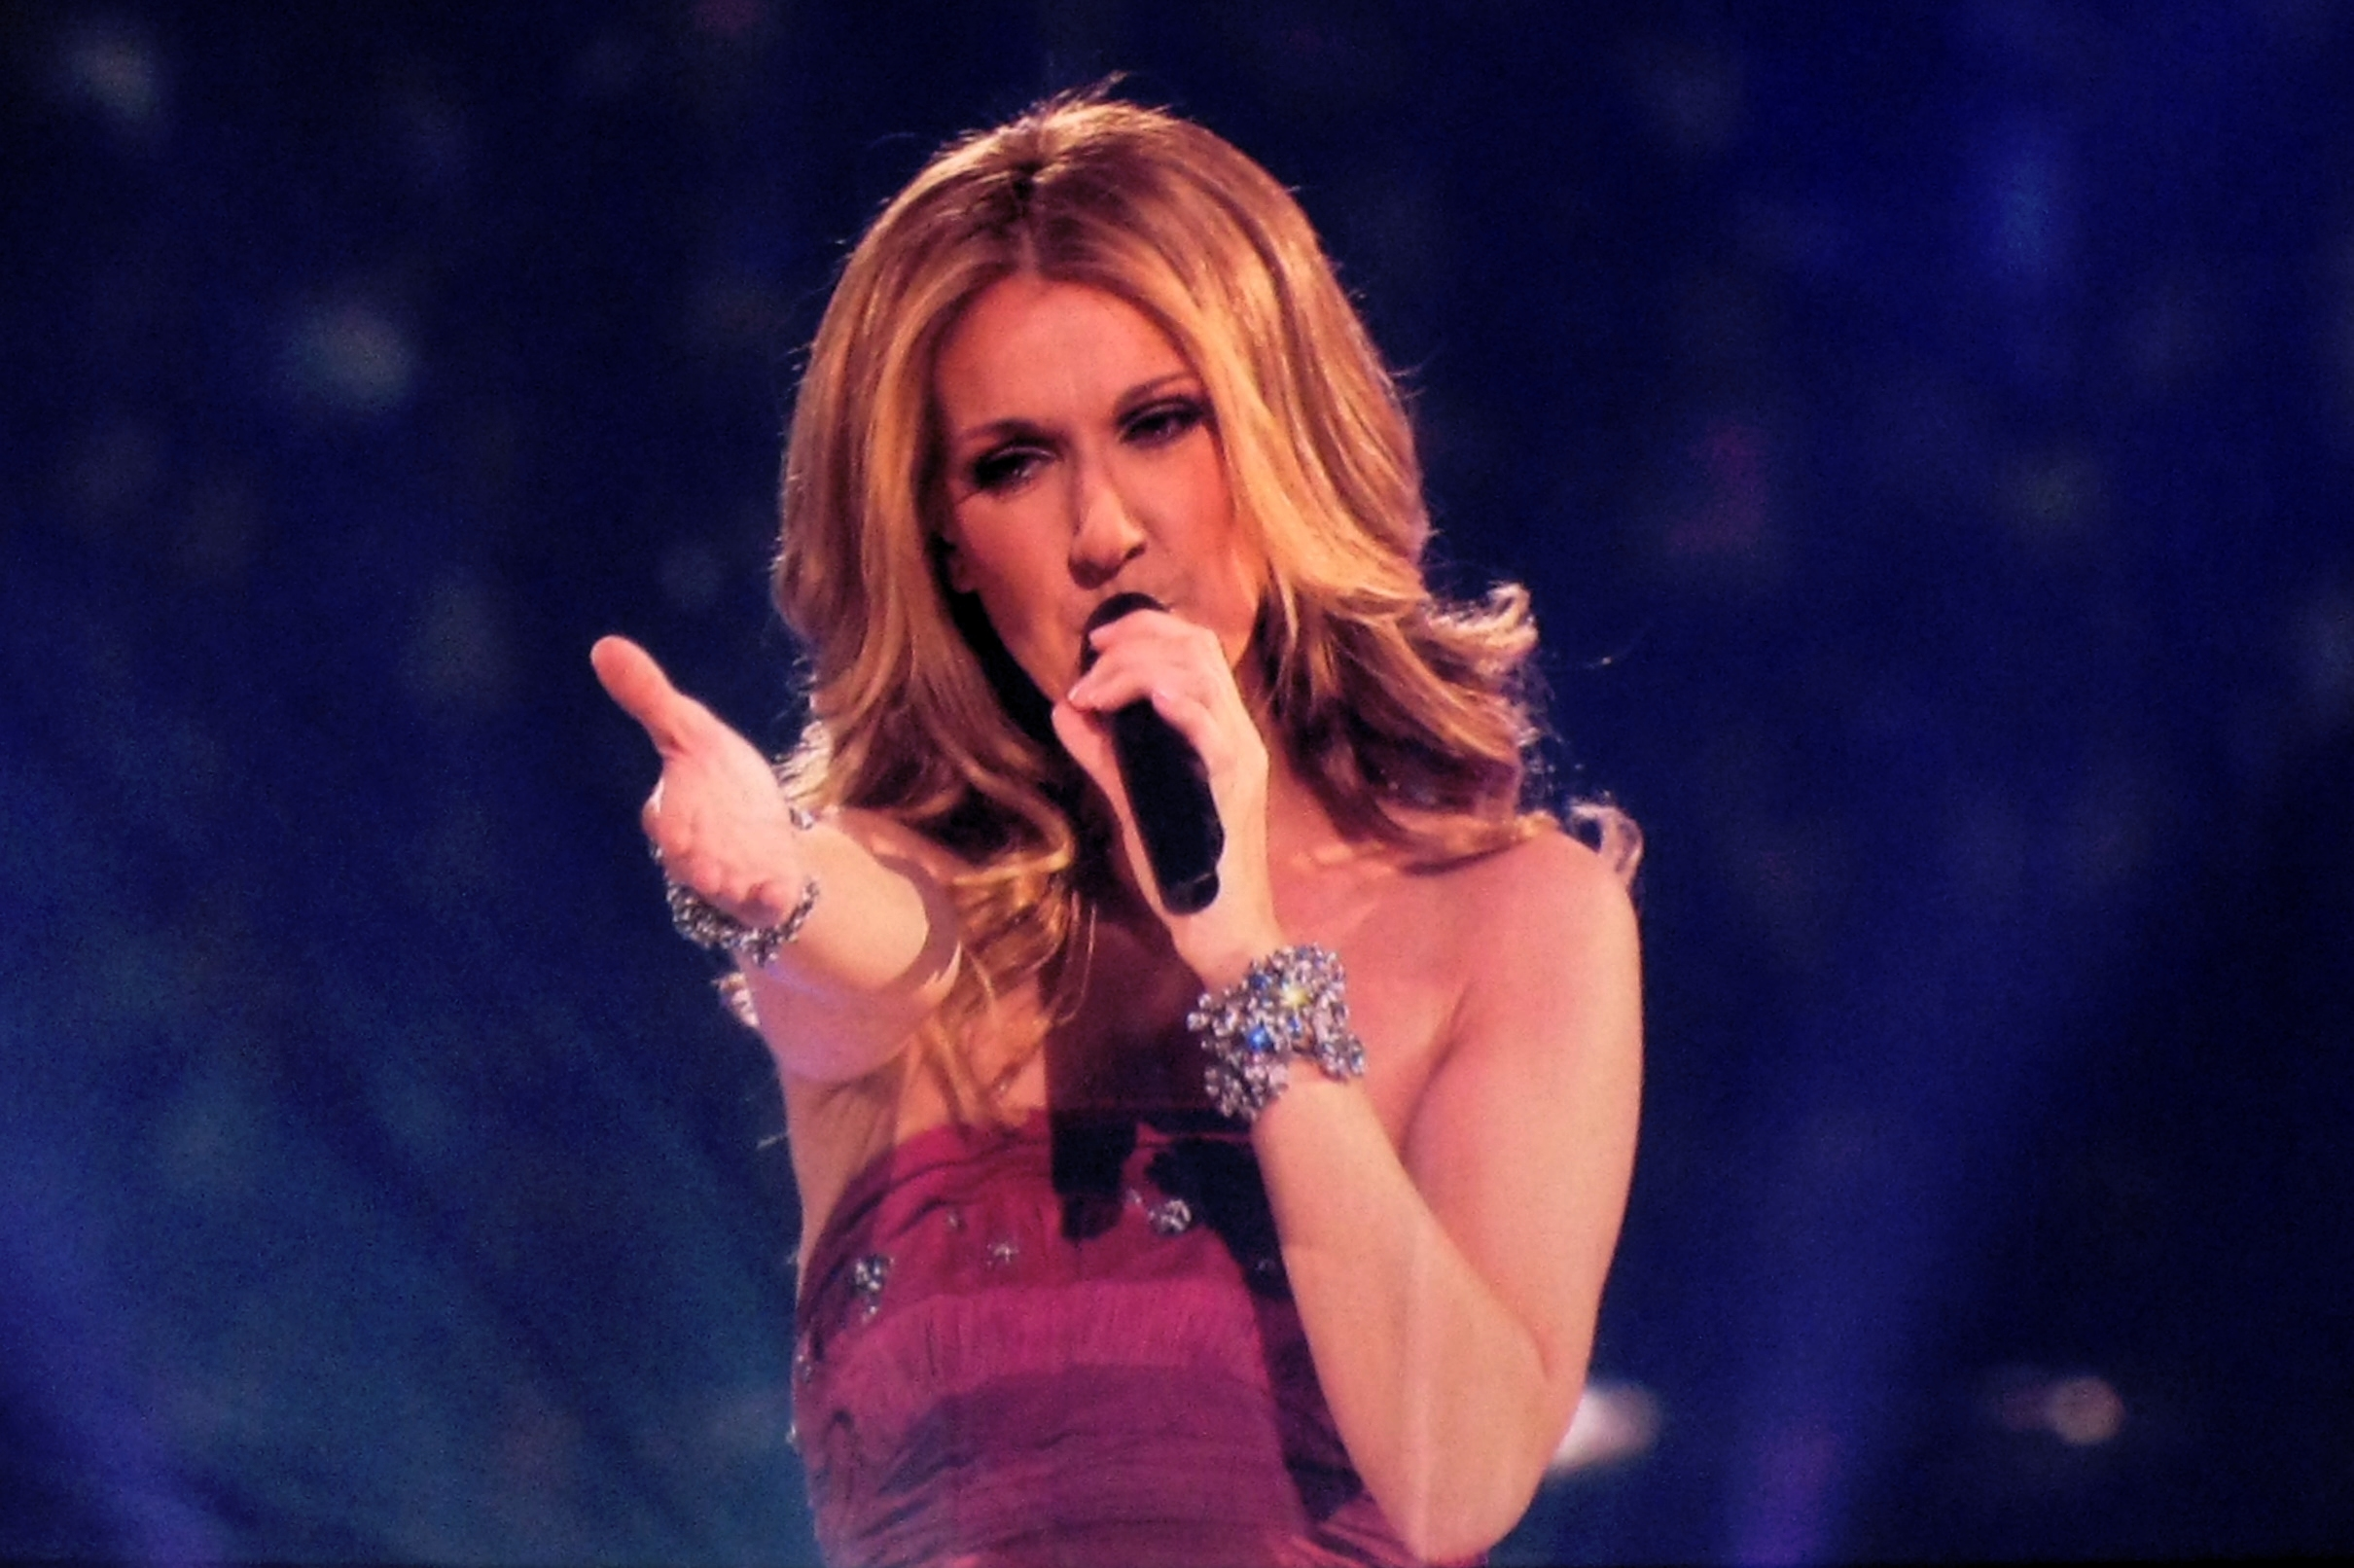 Tickets for the Celine Dion show have been priced from SGD150 to SGD1,200. Photo courtesy: Wikimedia